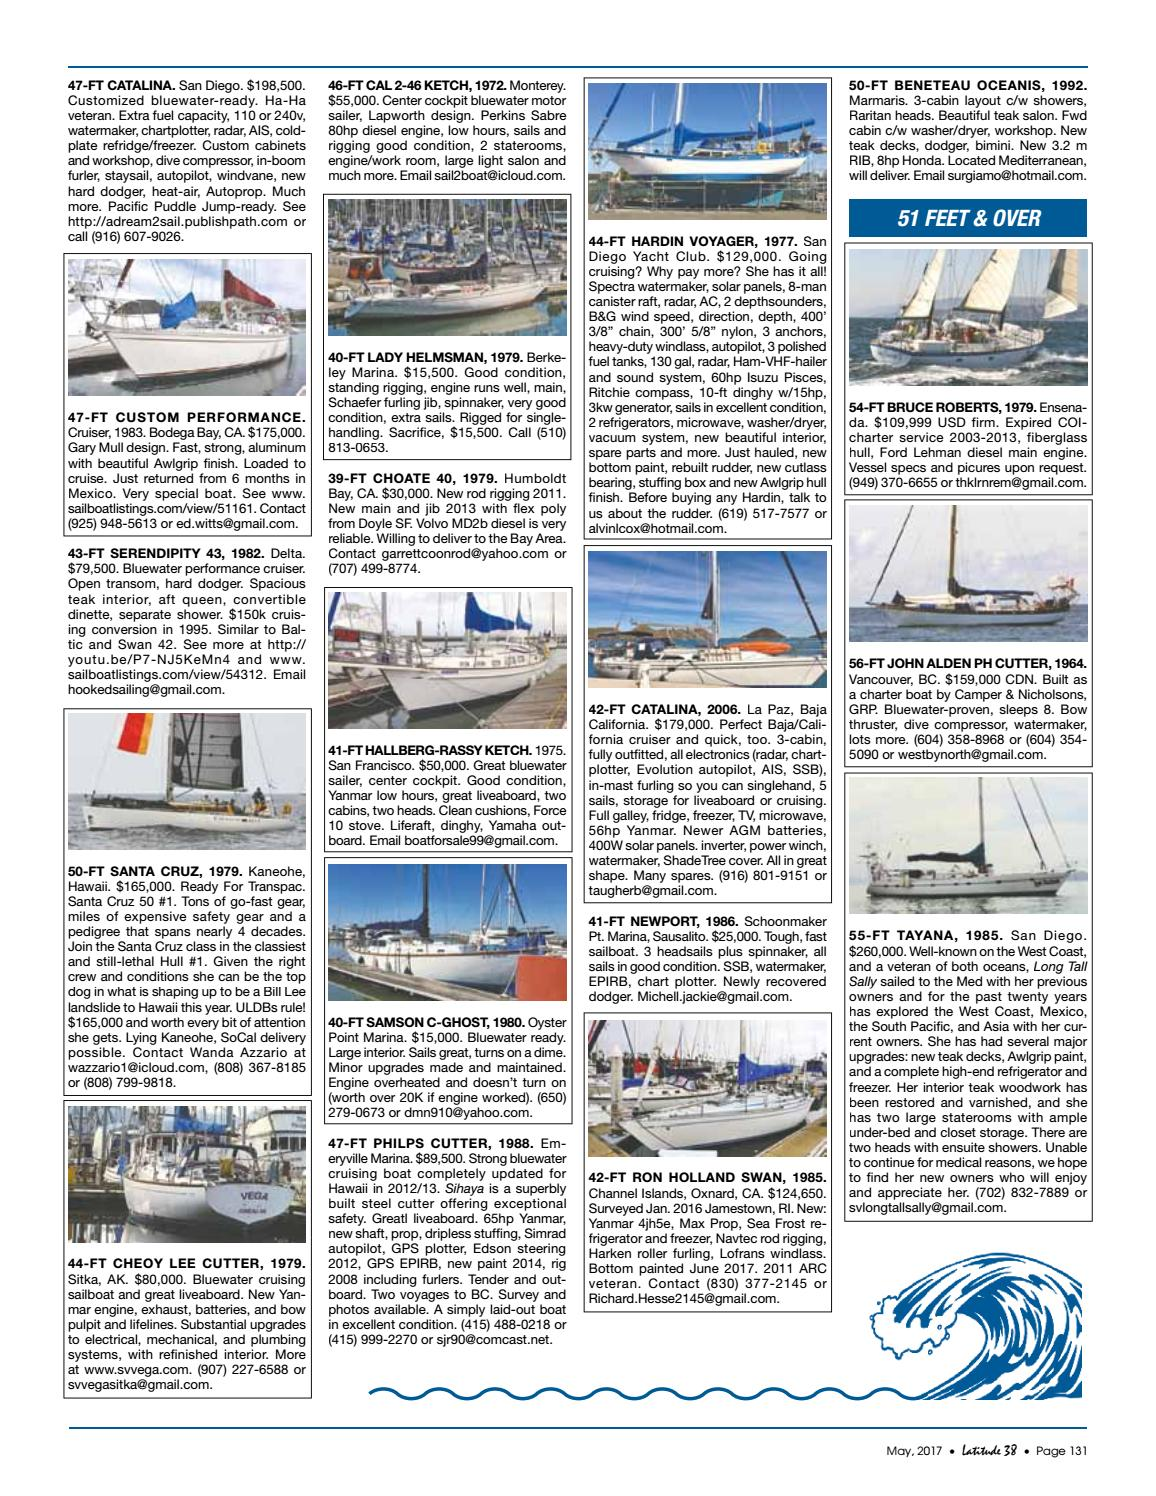 Latitude 38 May 2017 by Latitude 38 Media, LLC - issuu